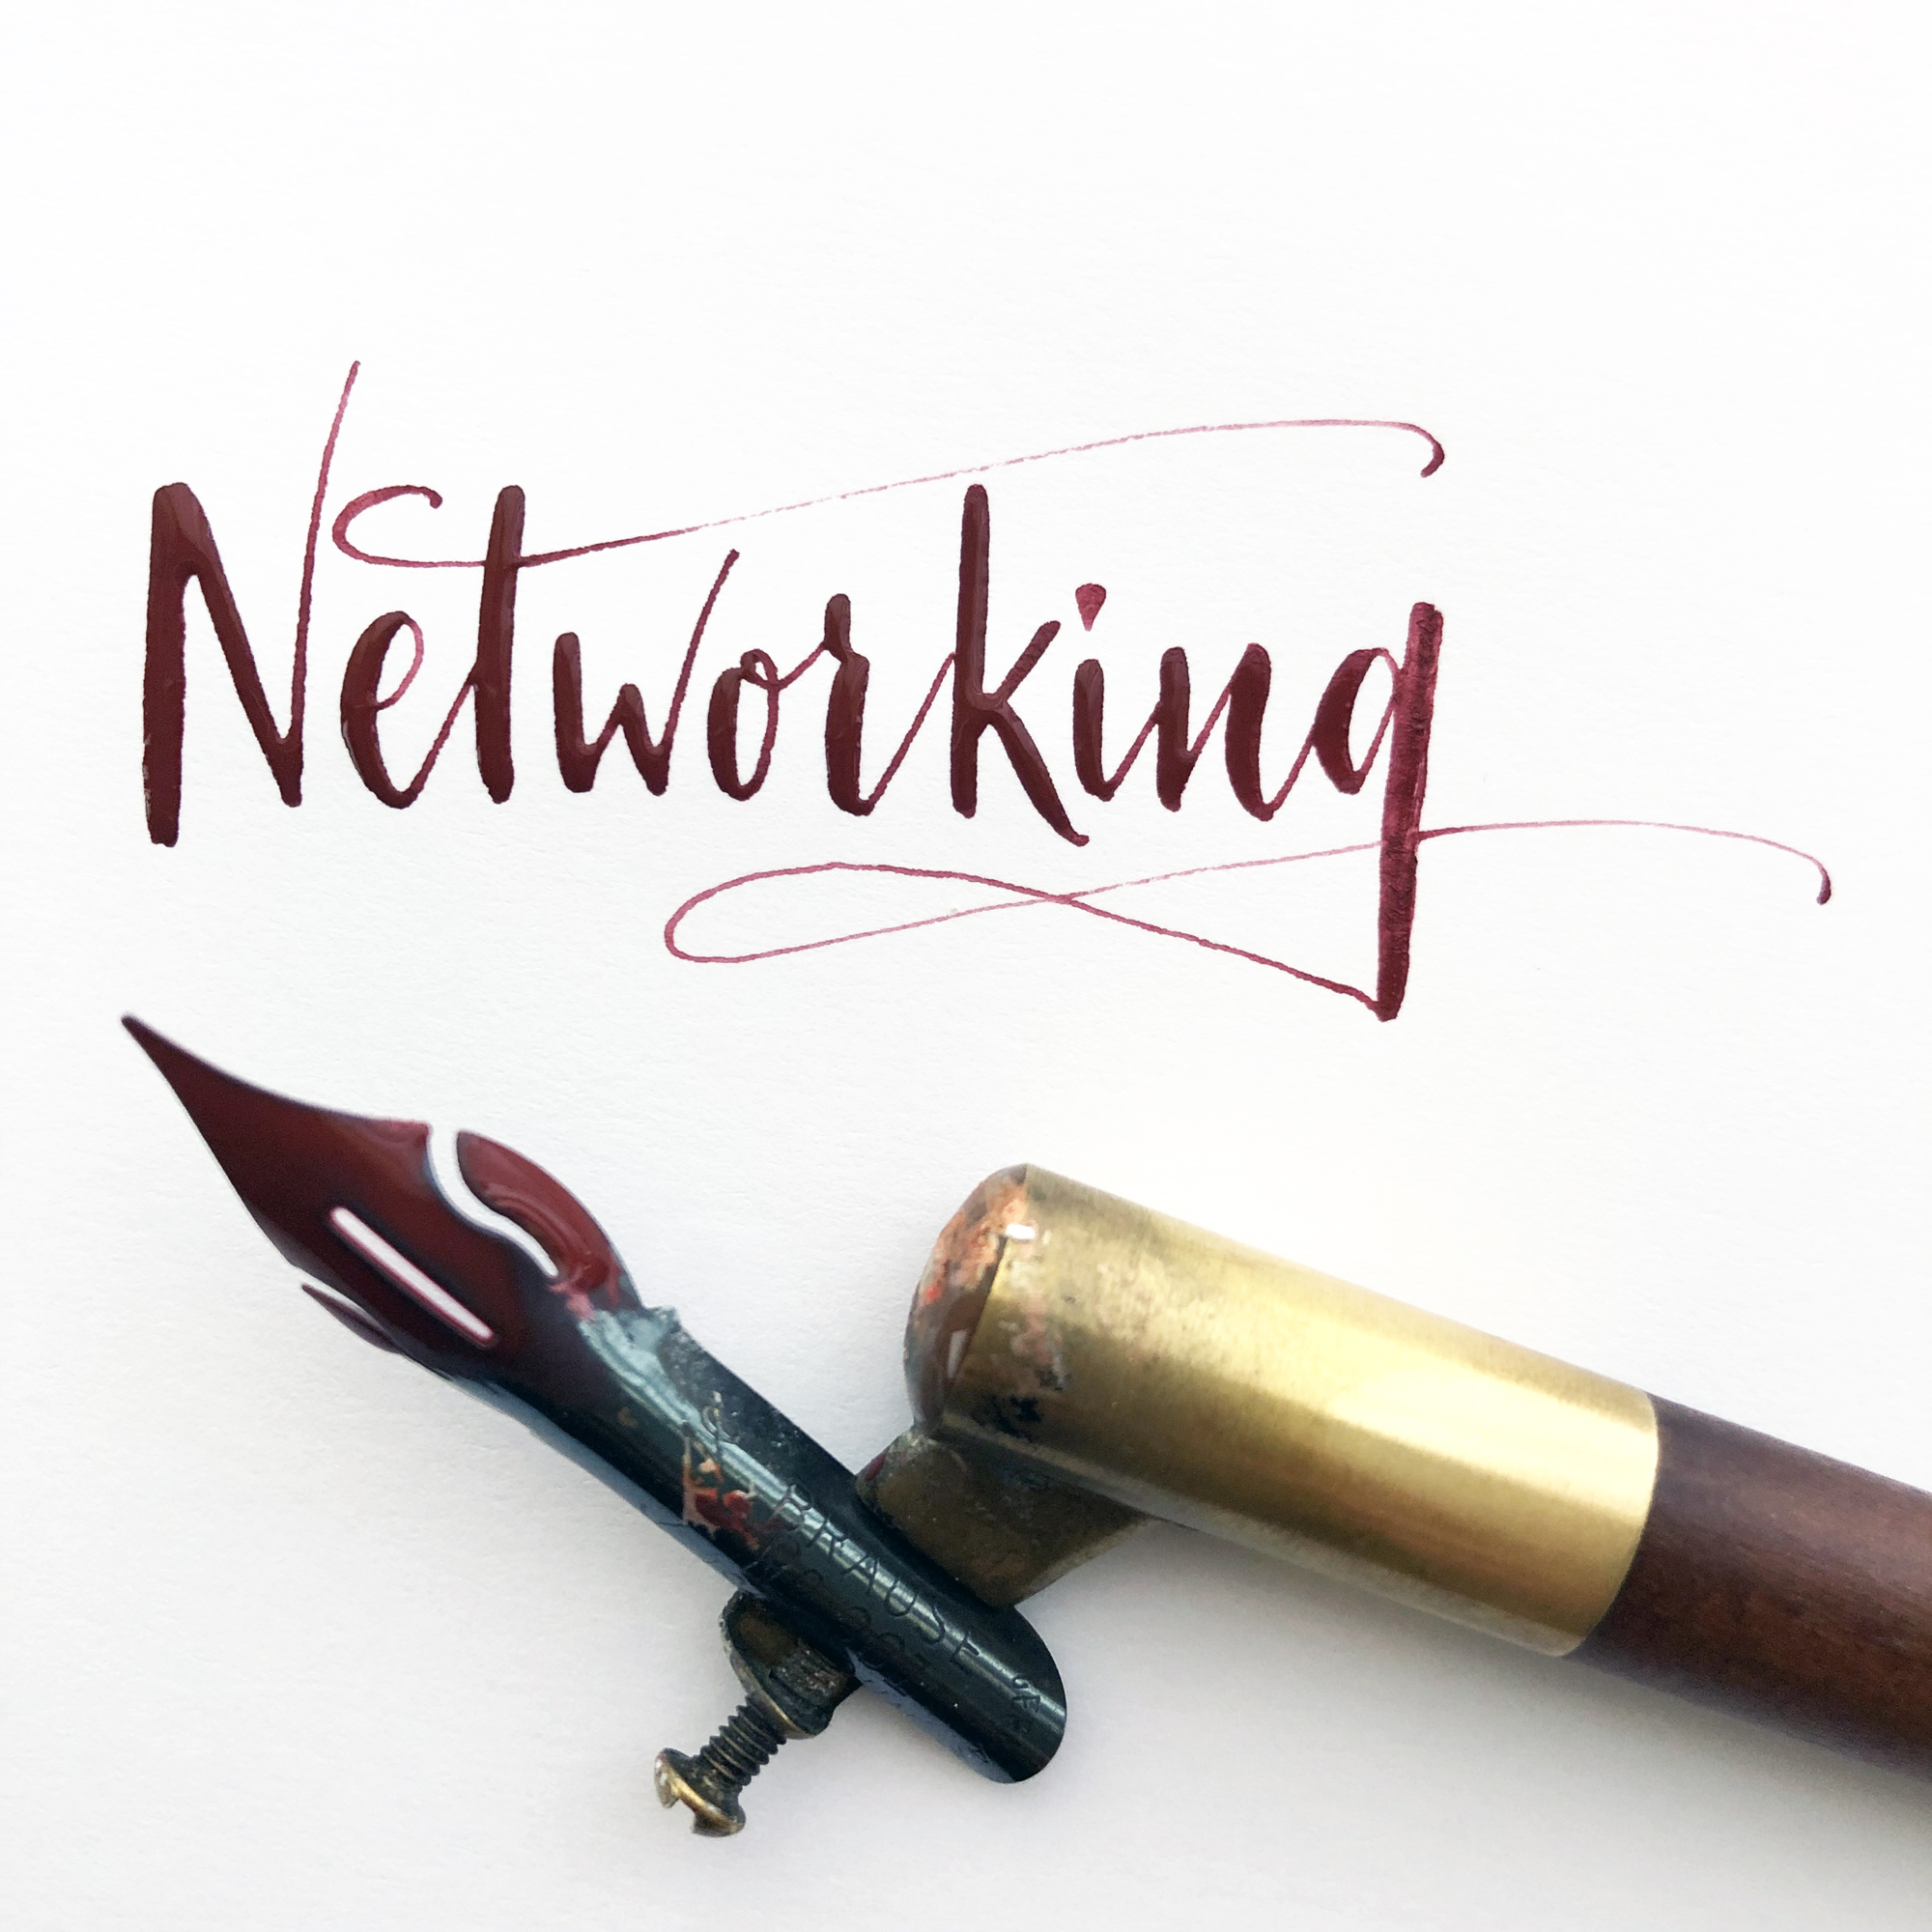 Networking-for-introverts-calligraphy.jpg